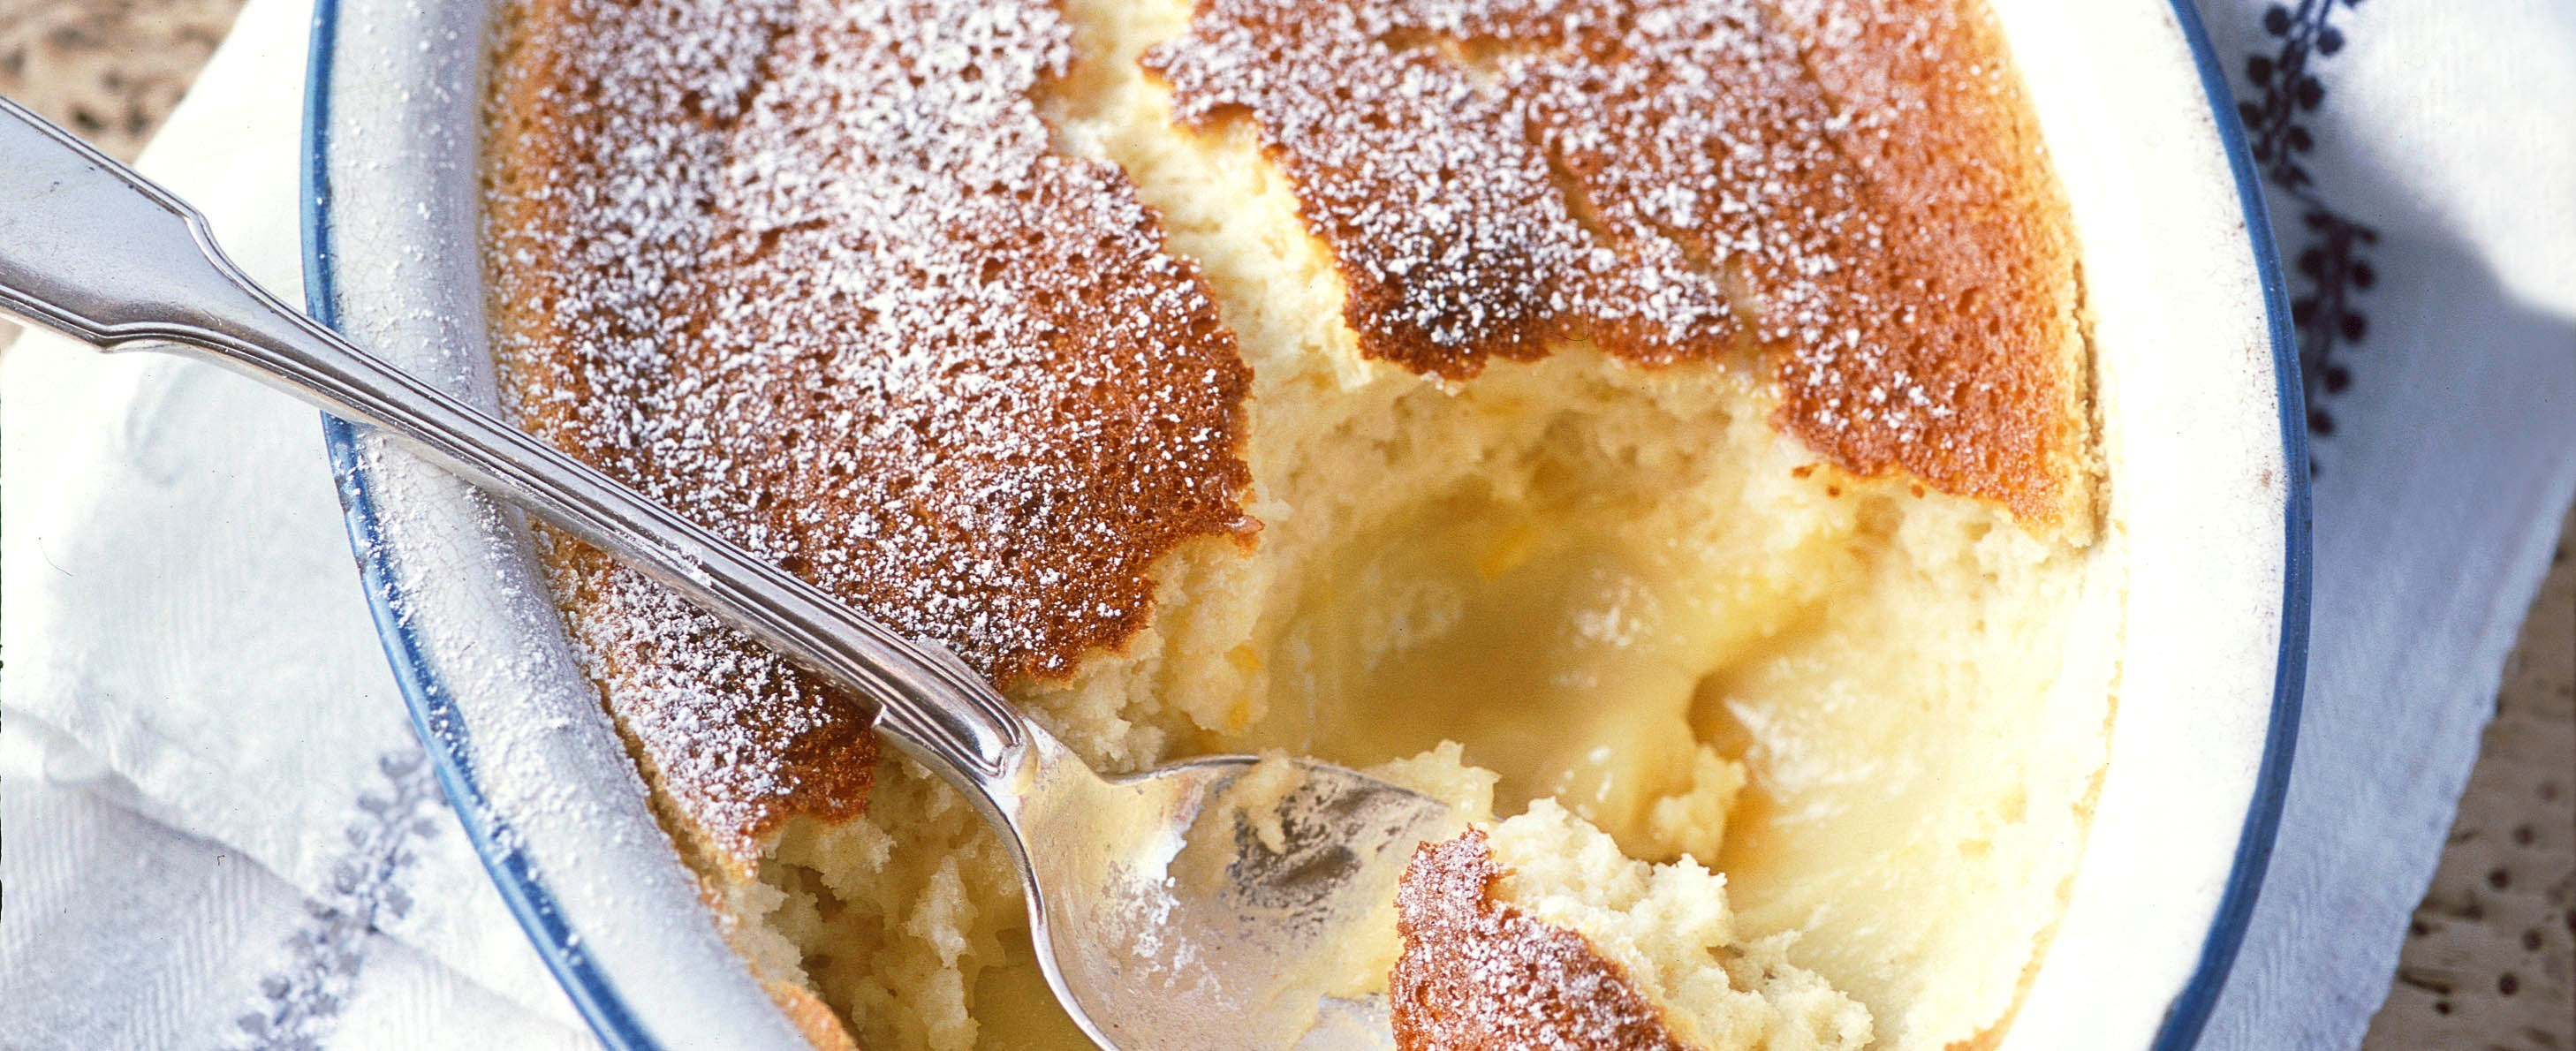 Lemon self-saucing pudding (Lemon surprise pudding)